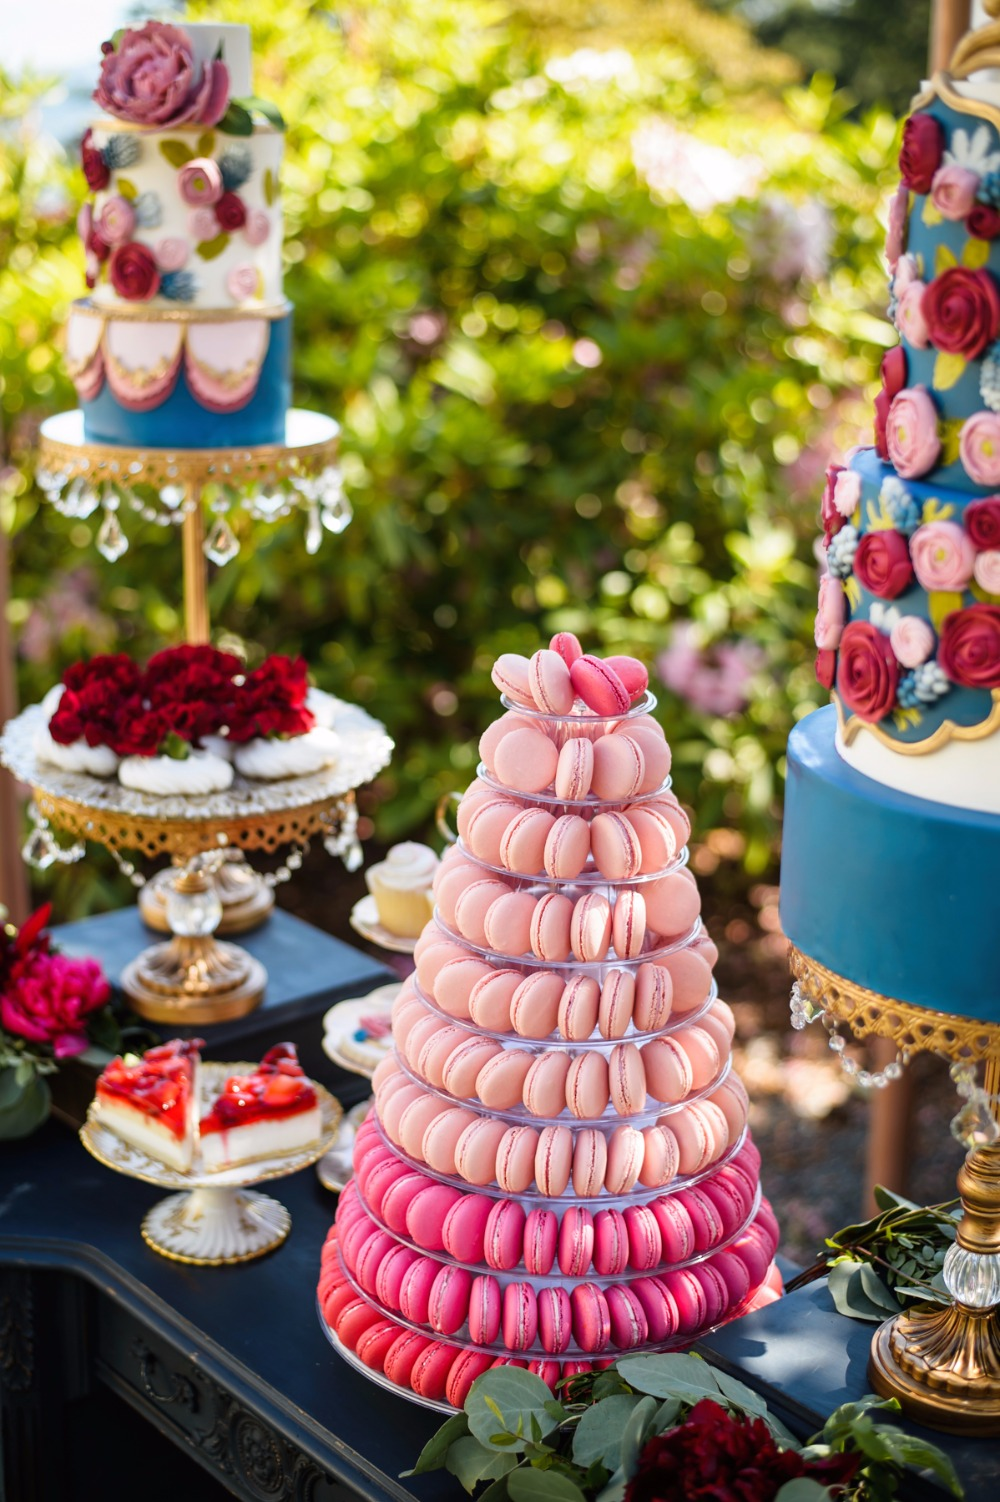 11_a-colorful-over-the-top-wedding-inspired-by-marie-antoinette.jpg